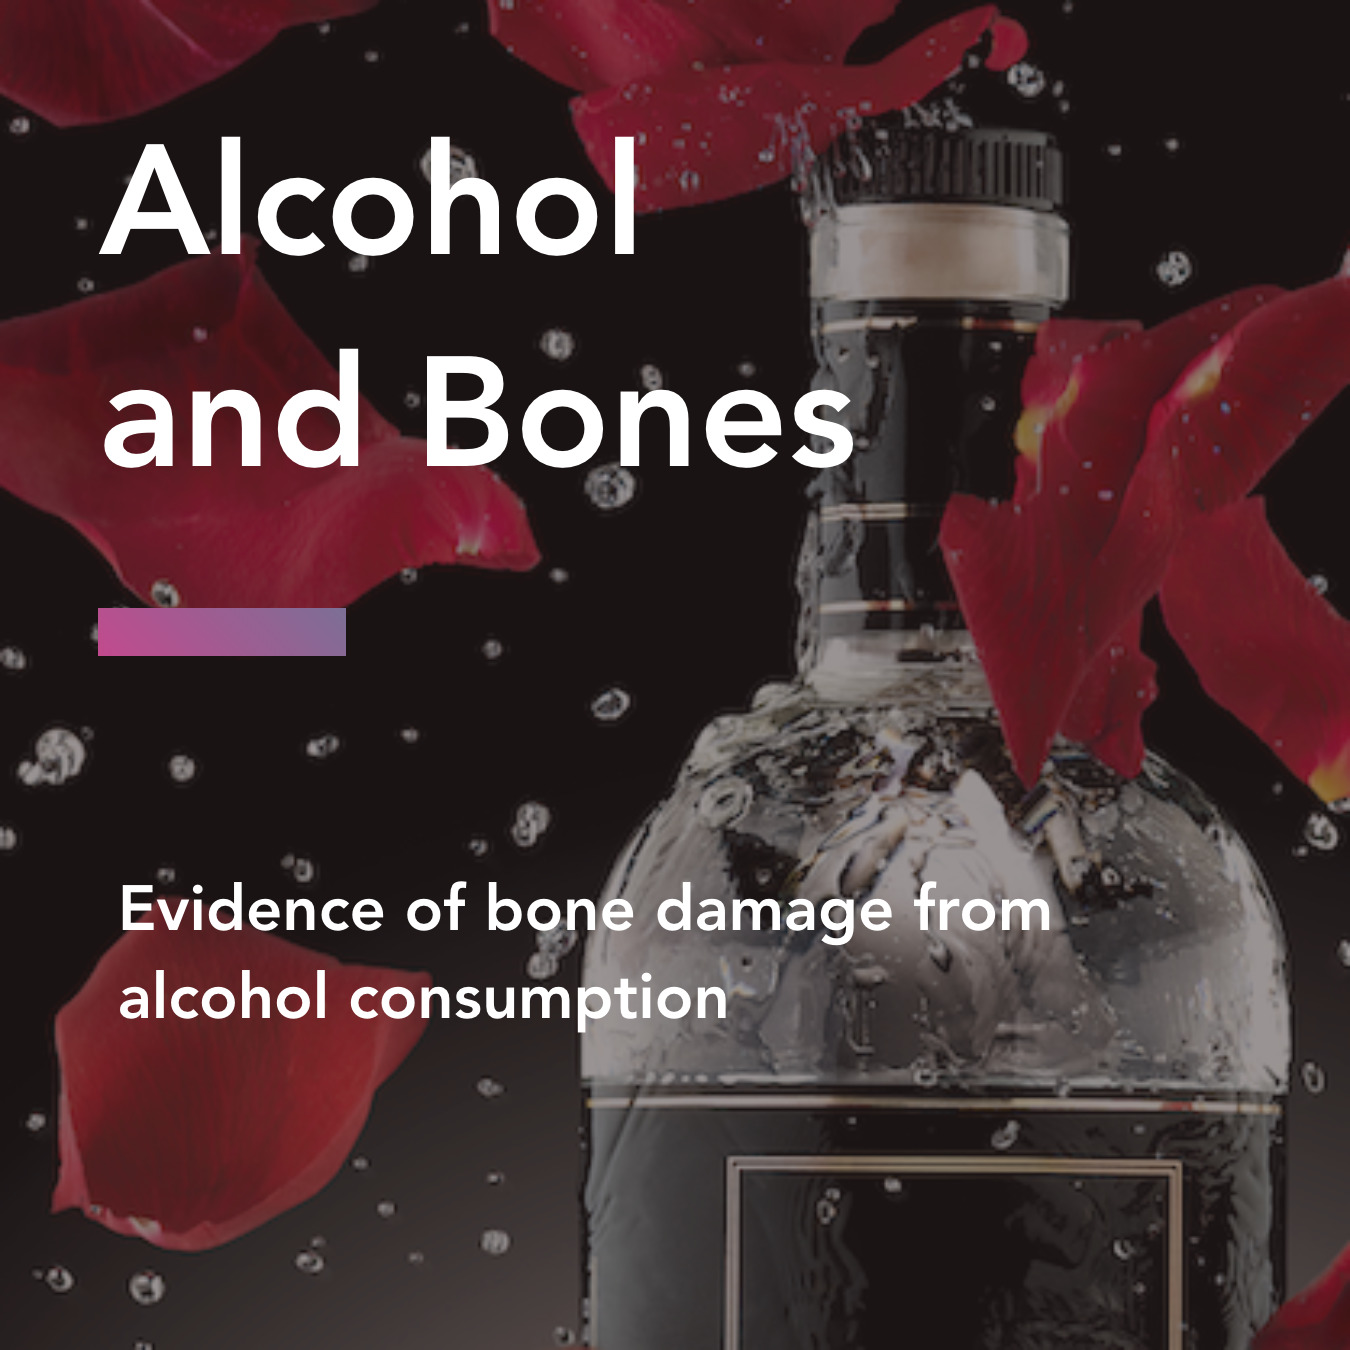 Alcohol and Bones: Evidence of bone damage from alcohol consumption